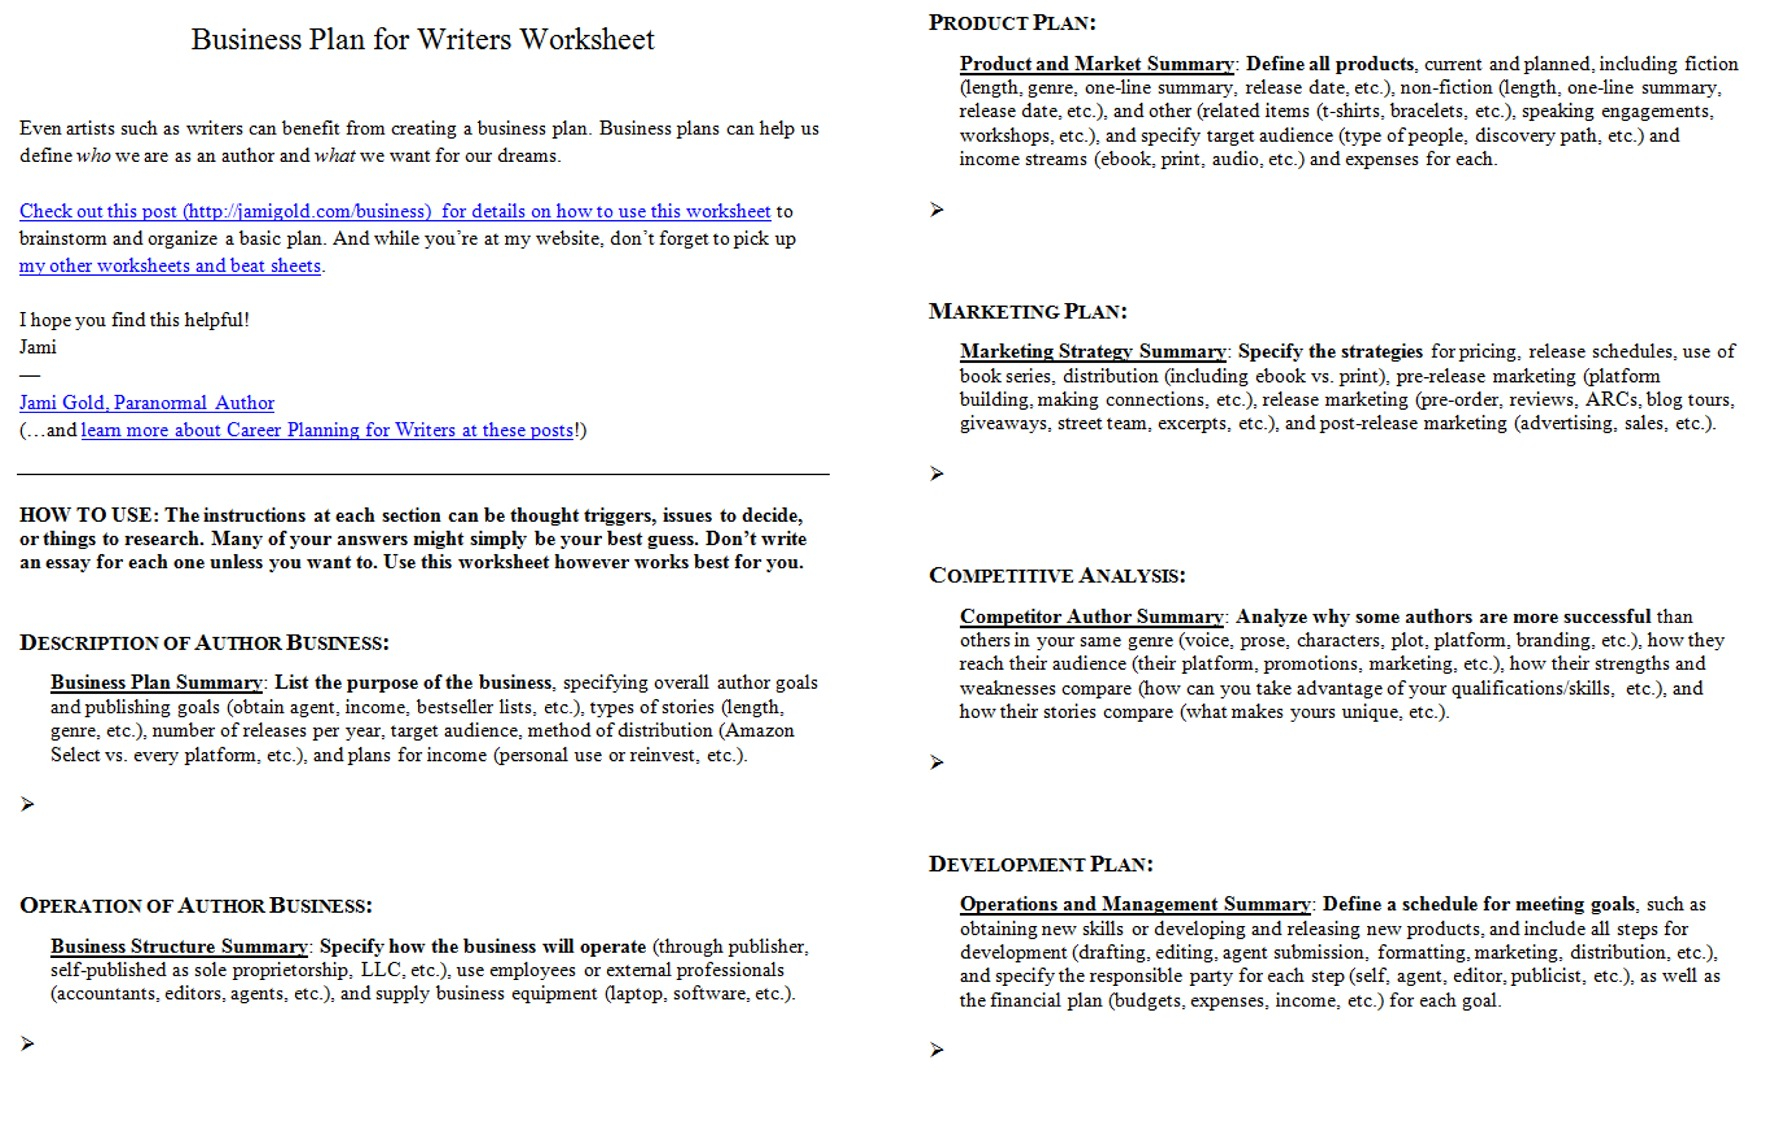 Weirdmailus  Pleasant Worksheets For Writers  Jami Gold Paranormal Author With Likable Screen Shot Of Both Pages Of The Business Plan For Writers Worksheet With Alluring Kumon Worksheets Pdf Also Time Worksheets For Grade  In Addition Scientific Method Practice Worksheet And Compound Interest Worksheets As Well As Structure Of An Atom Worksheet Additionally  Nbt  Worksheets From Jamigoldcom With Weirdmailus  Likable Worksheets For Writers  Jami Gold Paranormal Author With Alluring Screen Shot Of Both Pages Of The Business Plan For Writers Worksheet And Pleasant Kumon Worksheets Pdf Also Time Worksheets For Grade  In Addition Scientific Method Practice Worksheet From Jamigoldcom